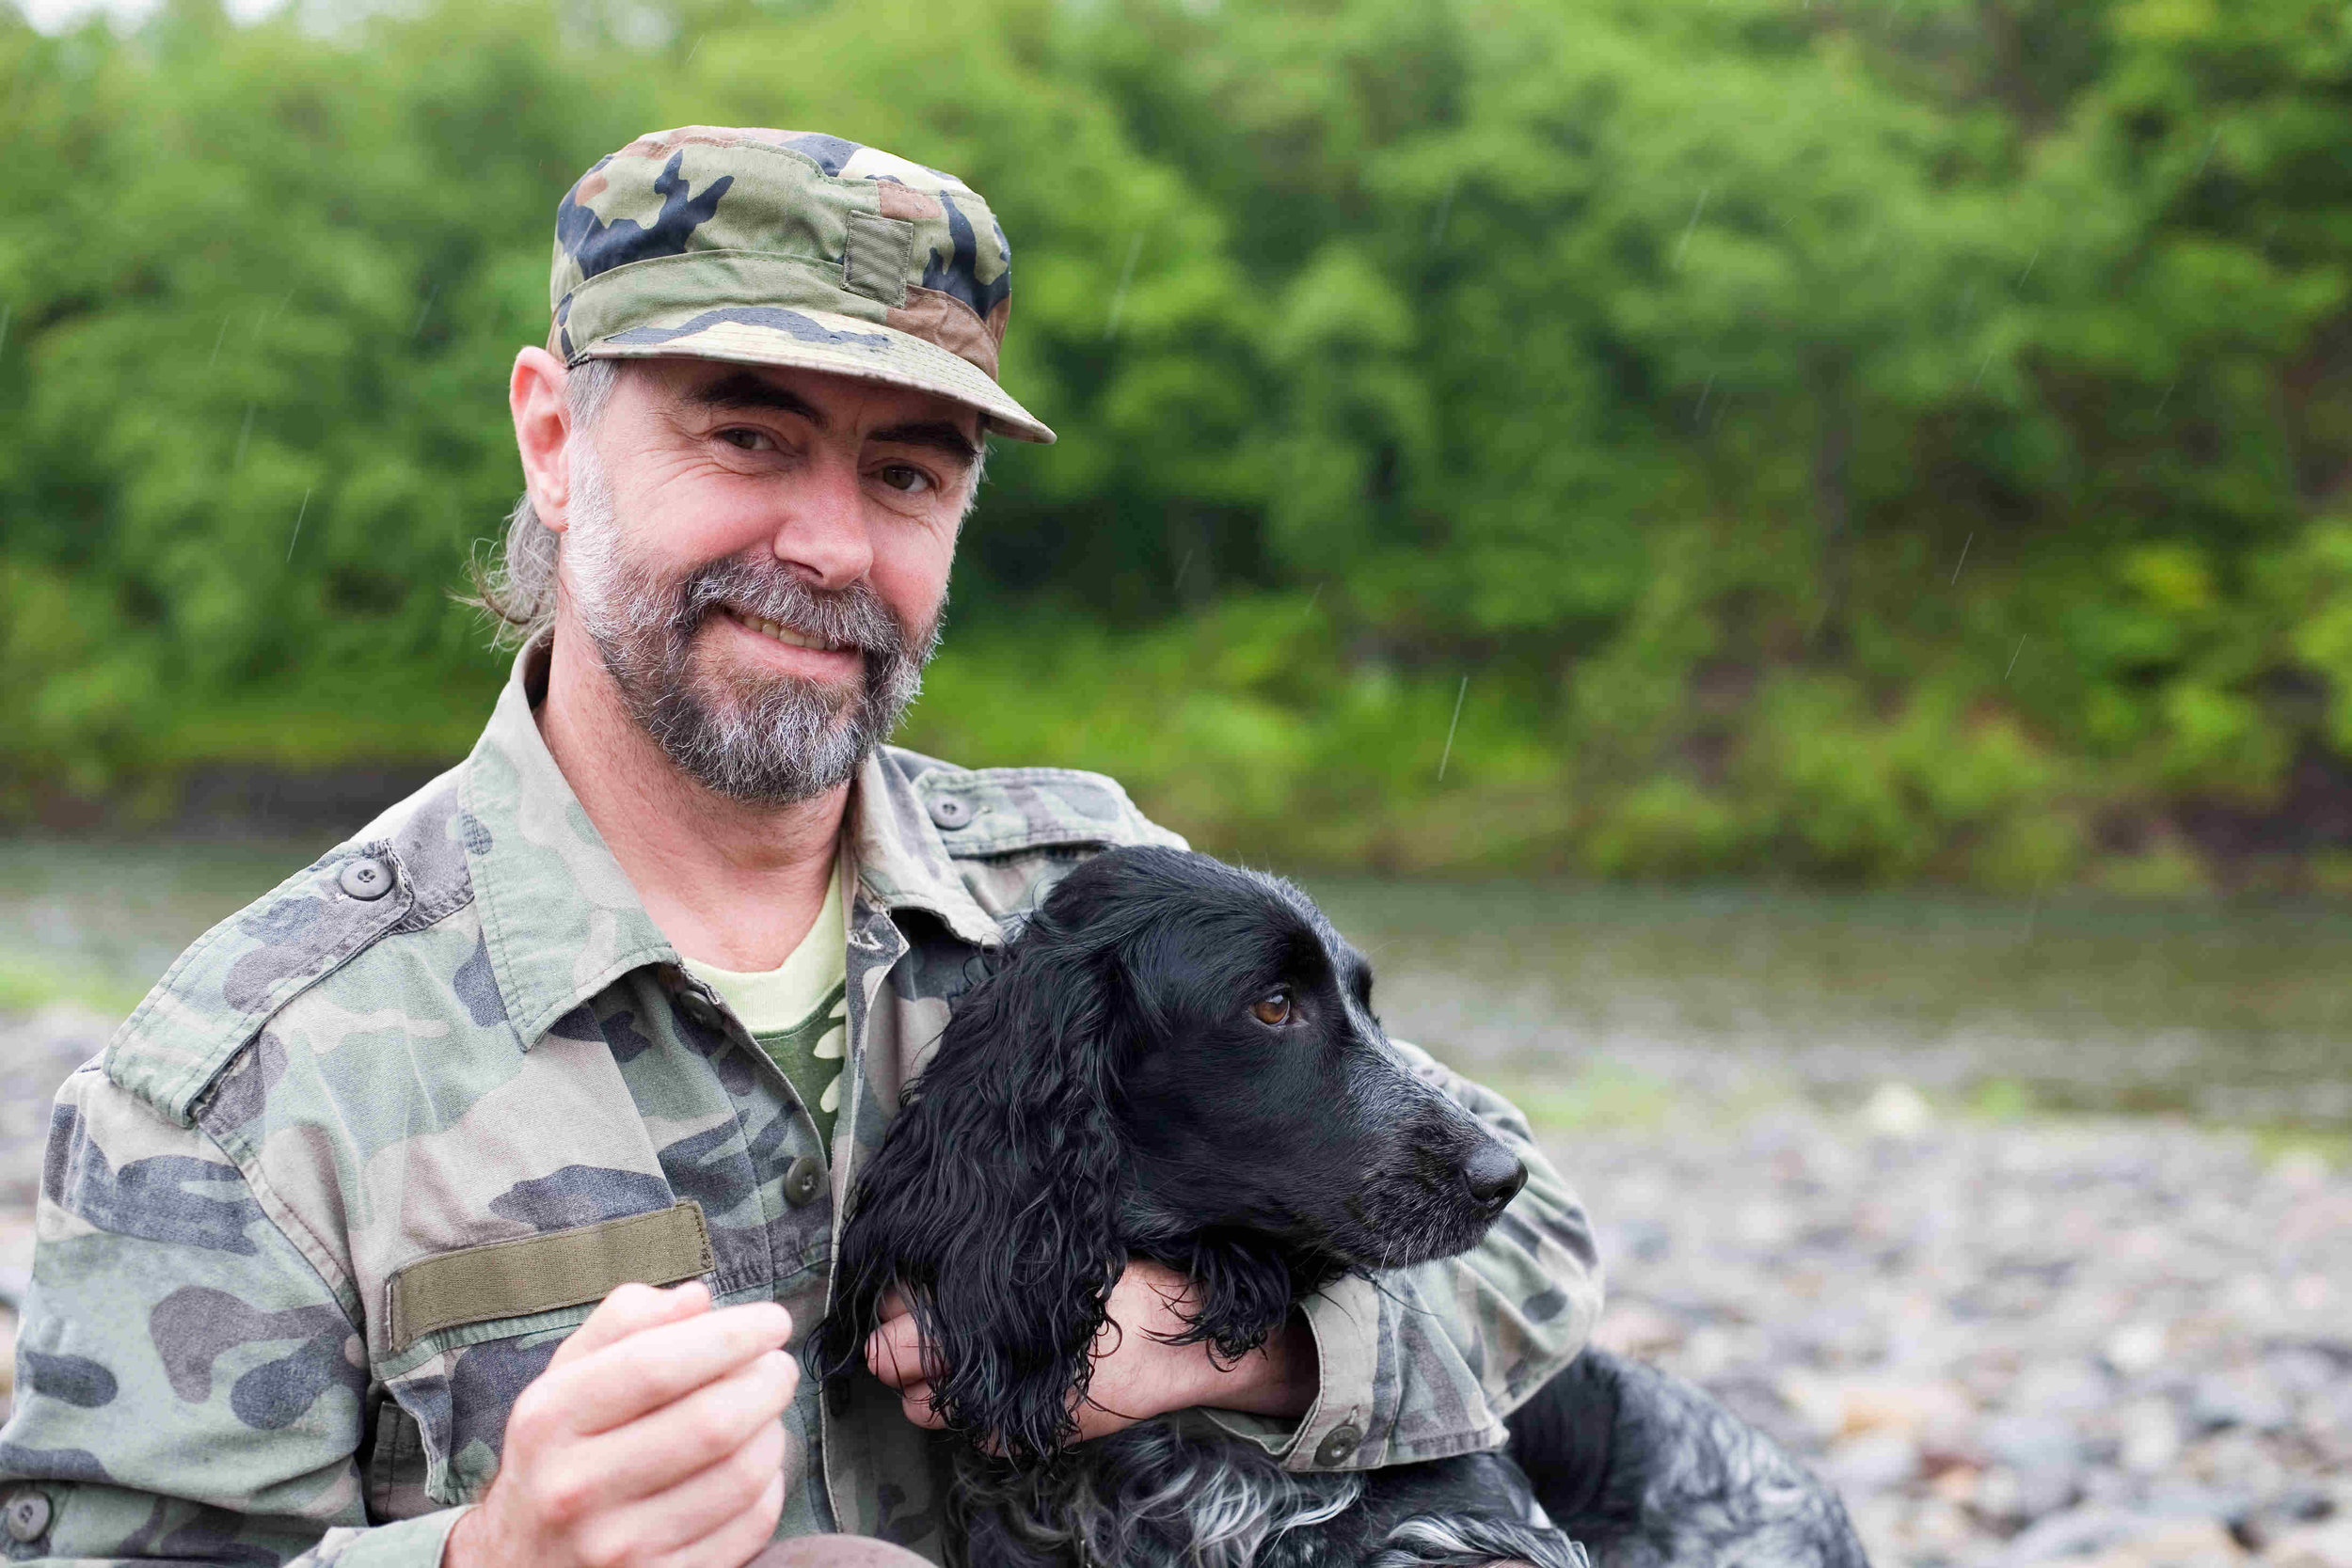 us-veteran-with-dog-by-river.jpg